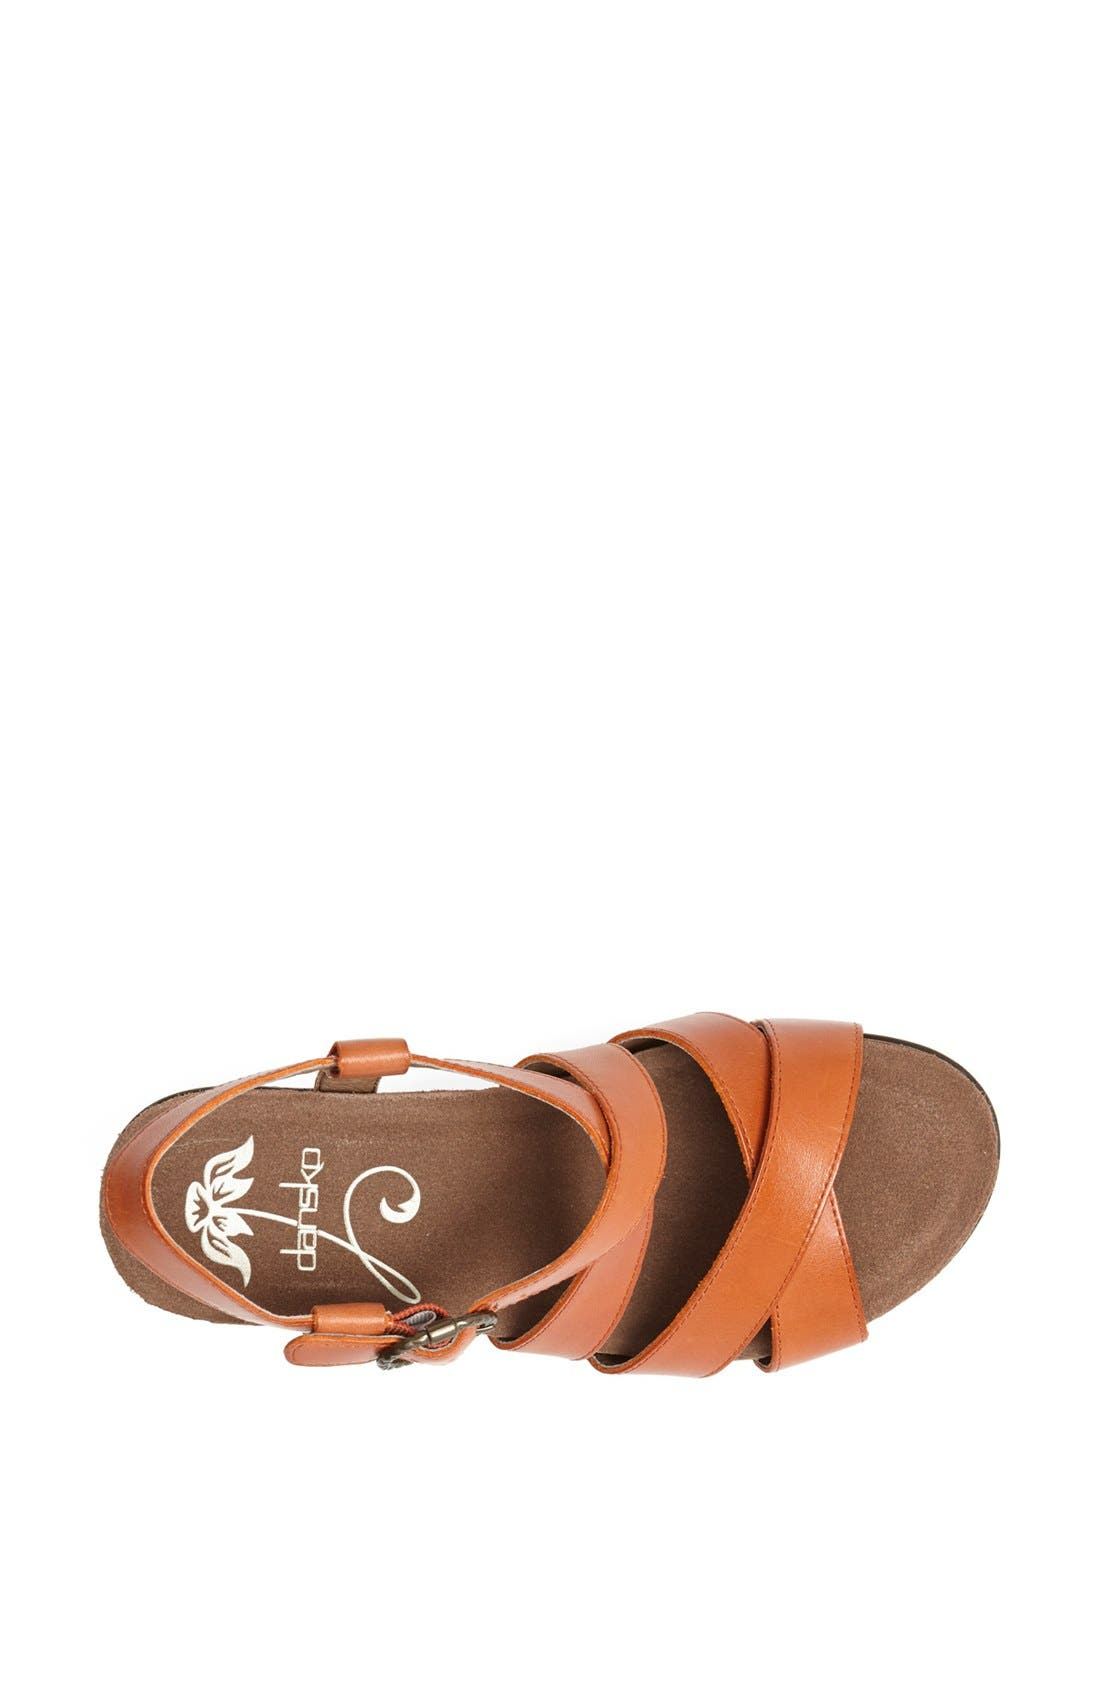 Alternate Image 3  - Dansko 'Frida' Sandal